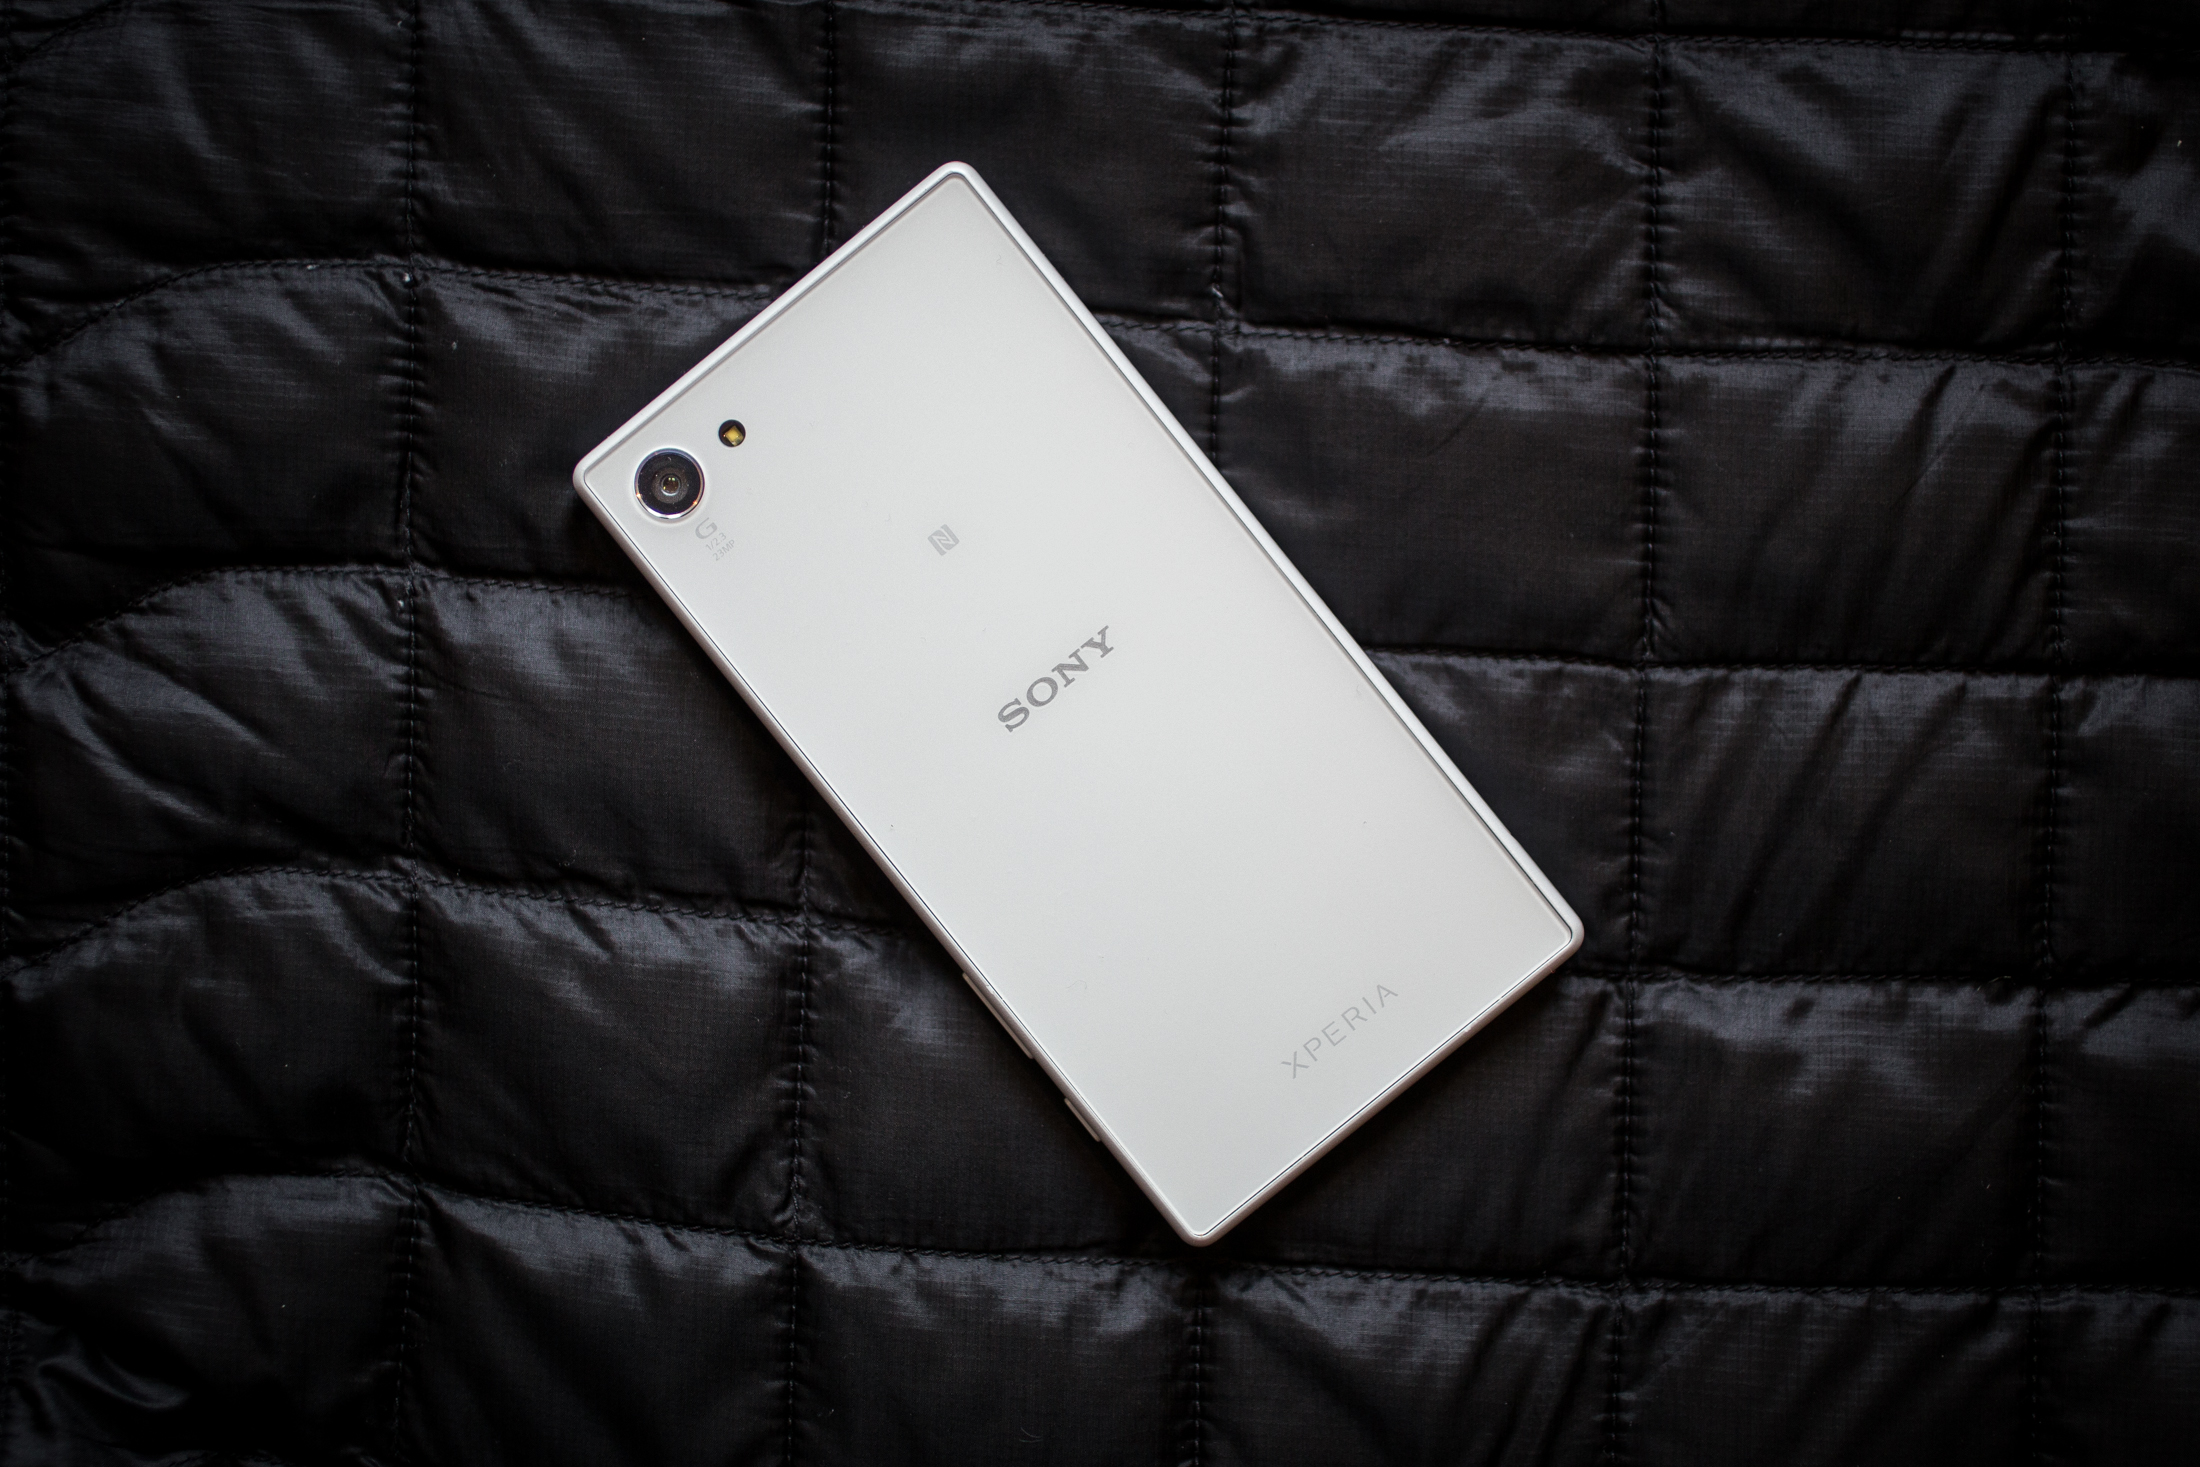 sony-xperia-z5-compact-product-shots.jpg